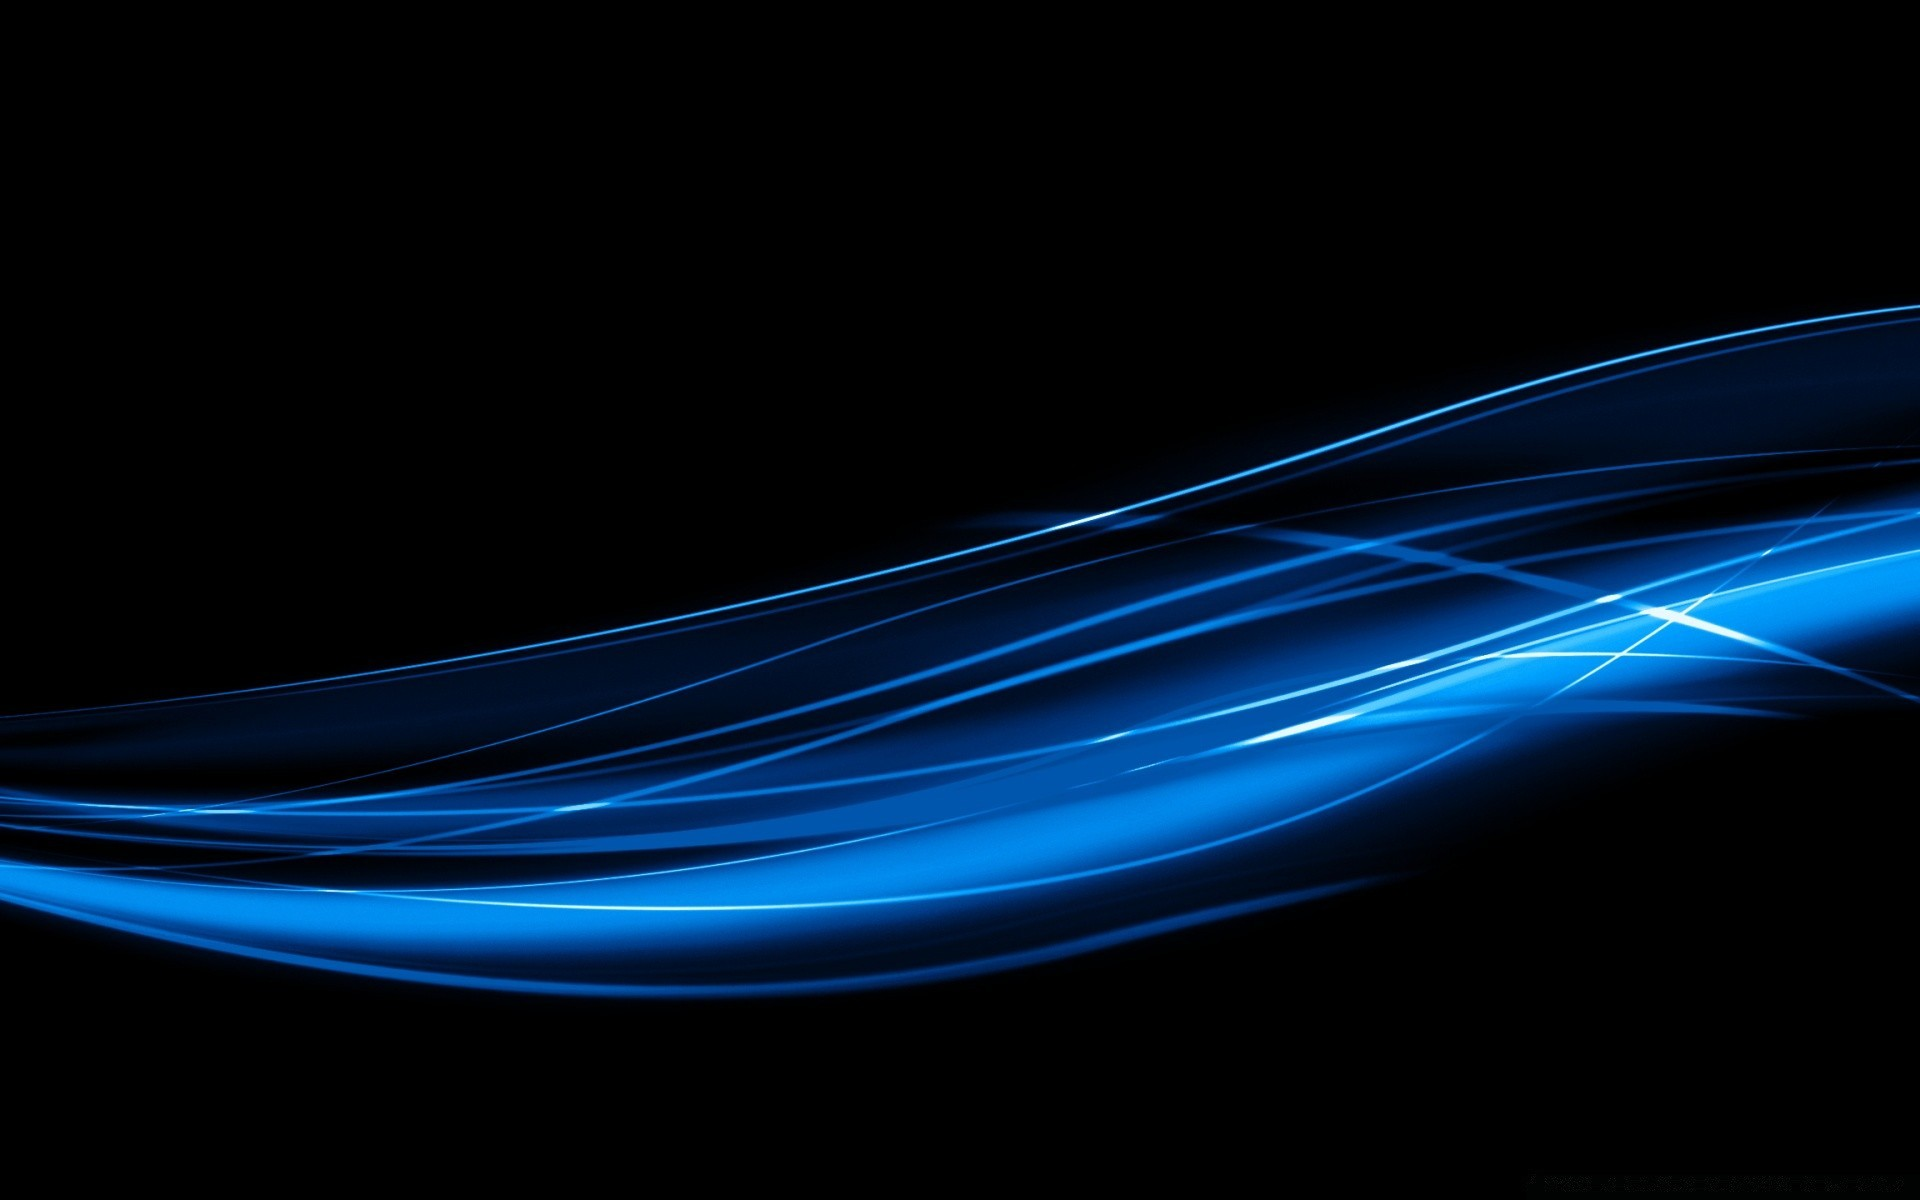 Blue Wavy Lines Phone Wallpapers